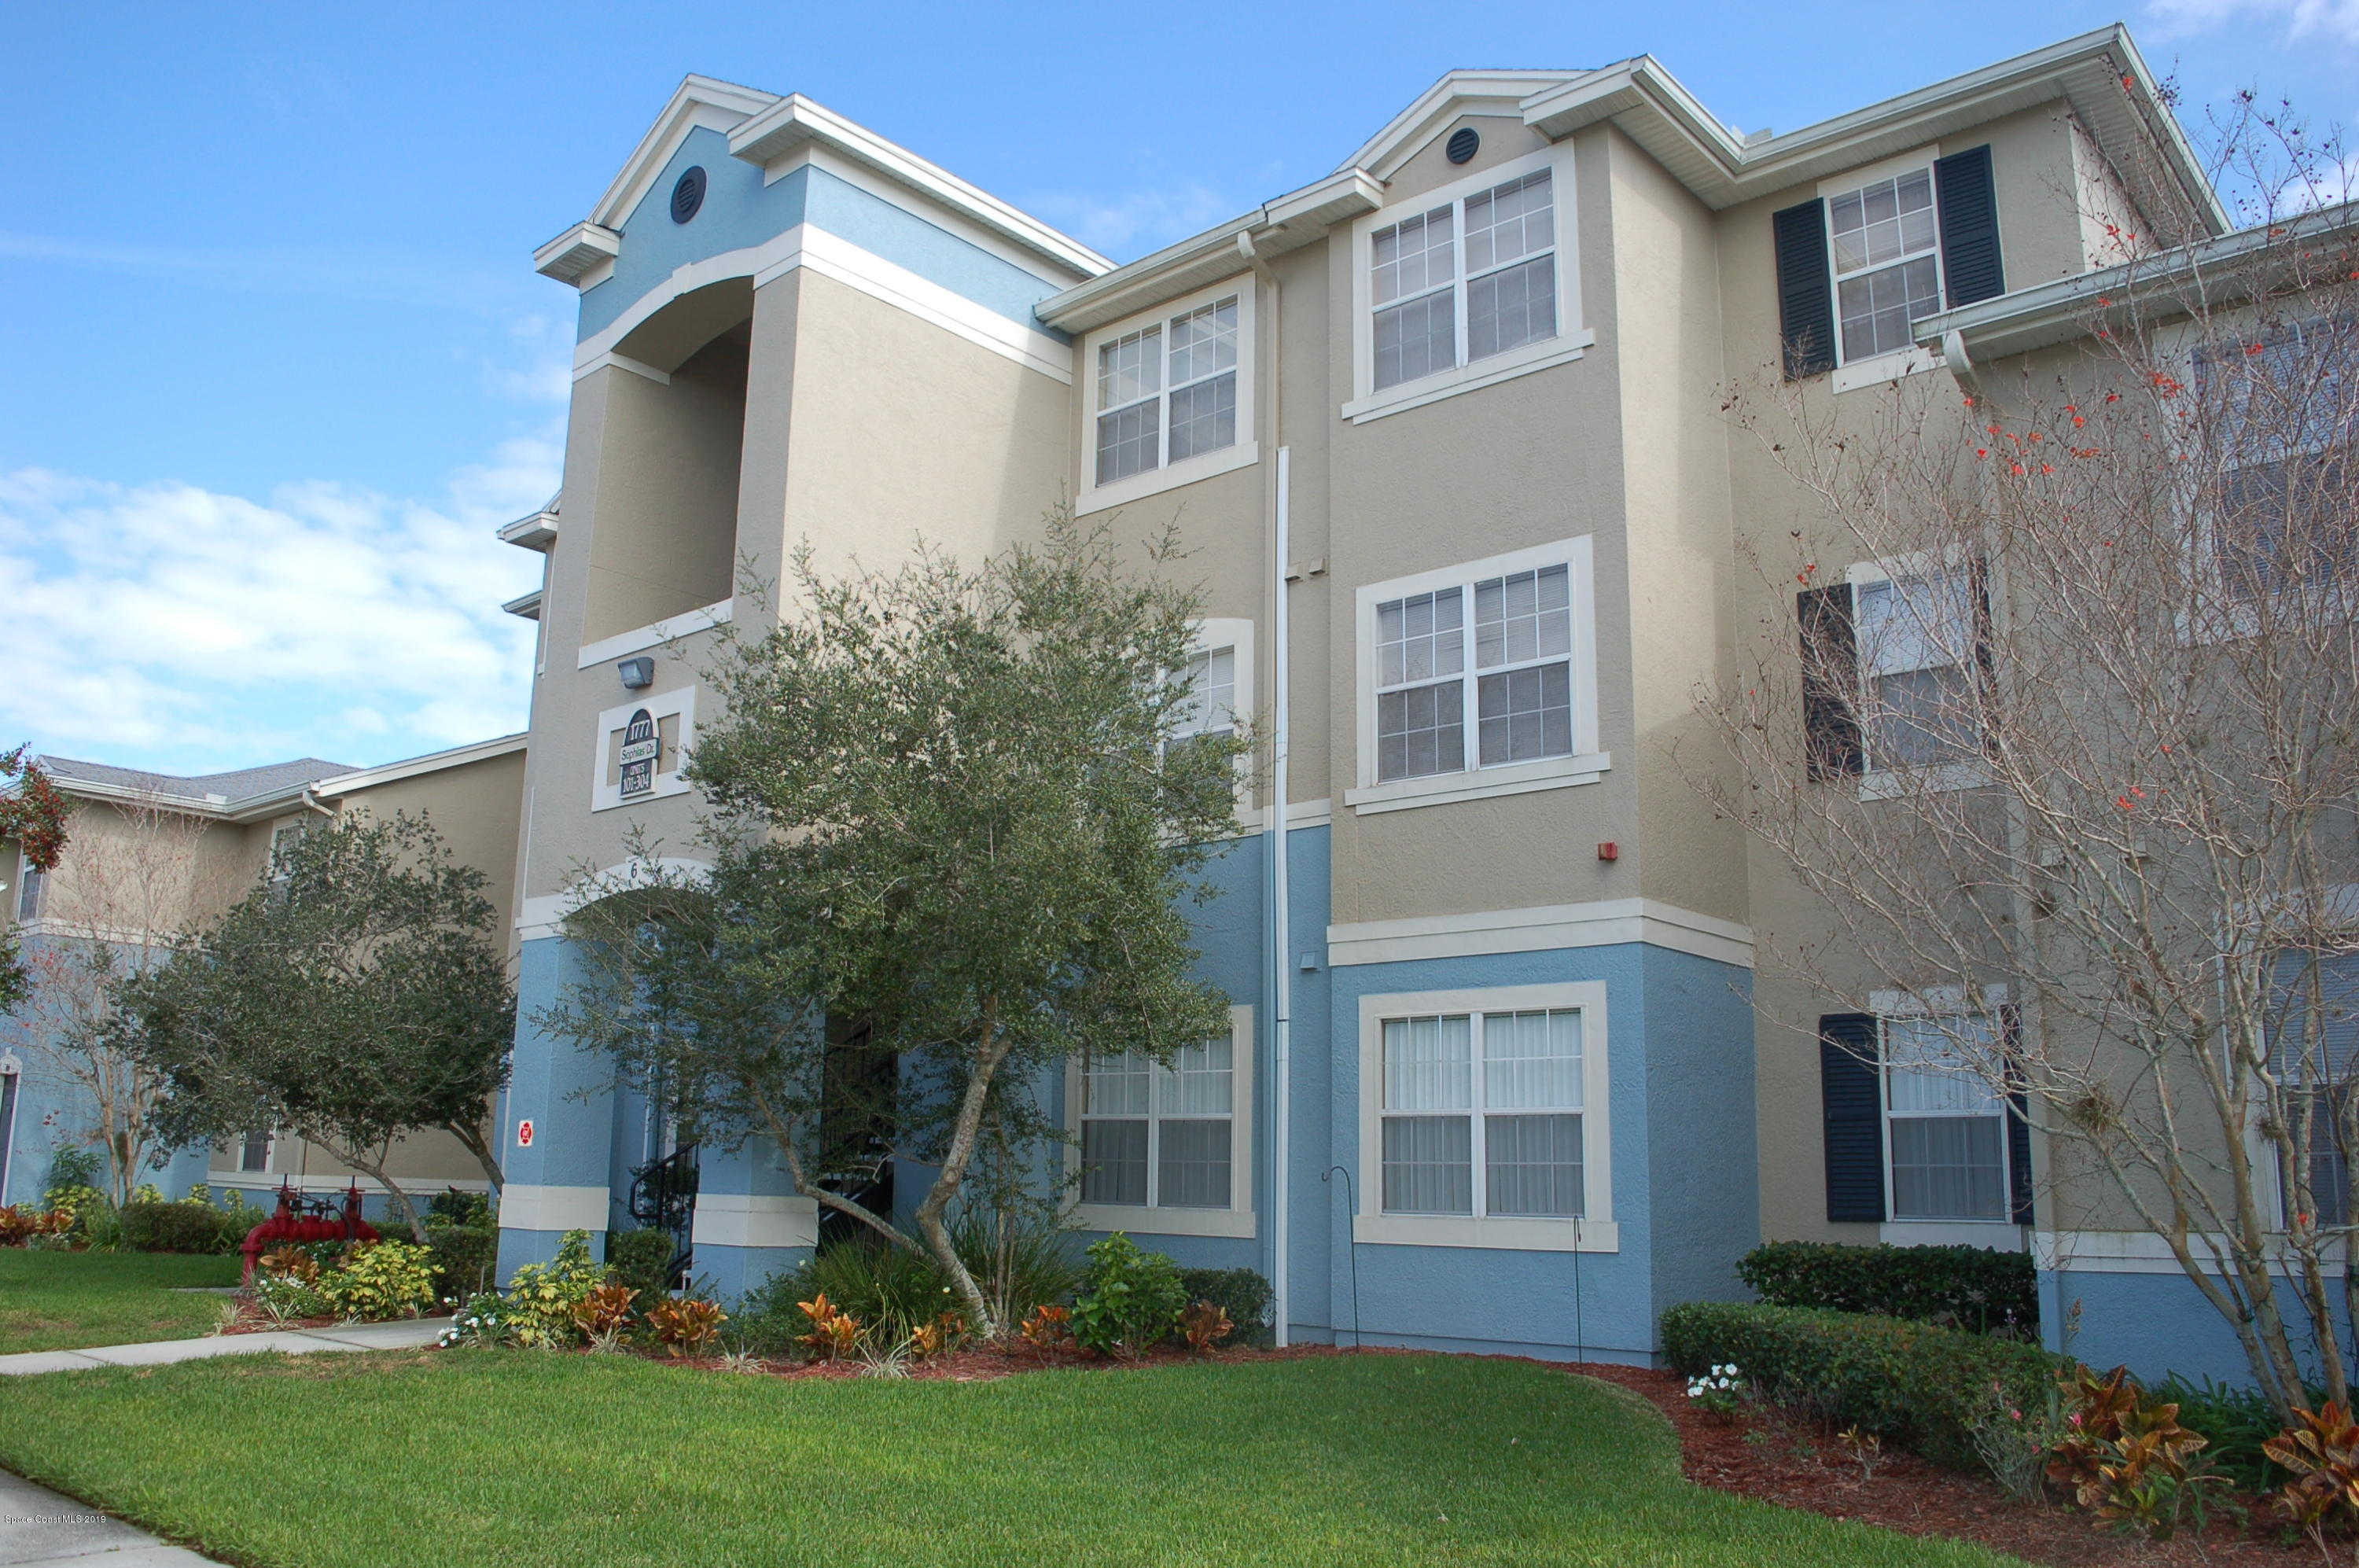 1777 Sophias Drive #205, Melbourne, FL 32940 is now new to the market!